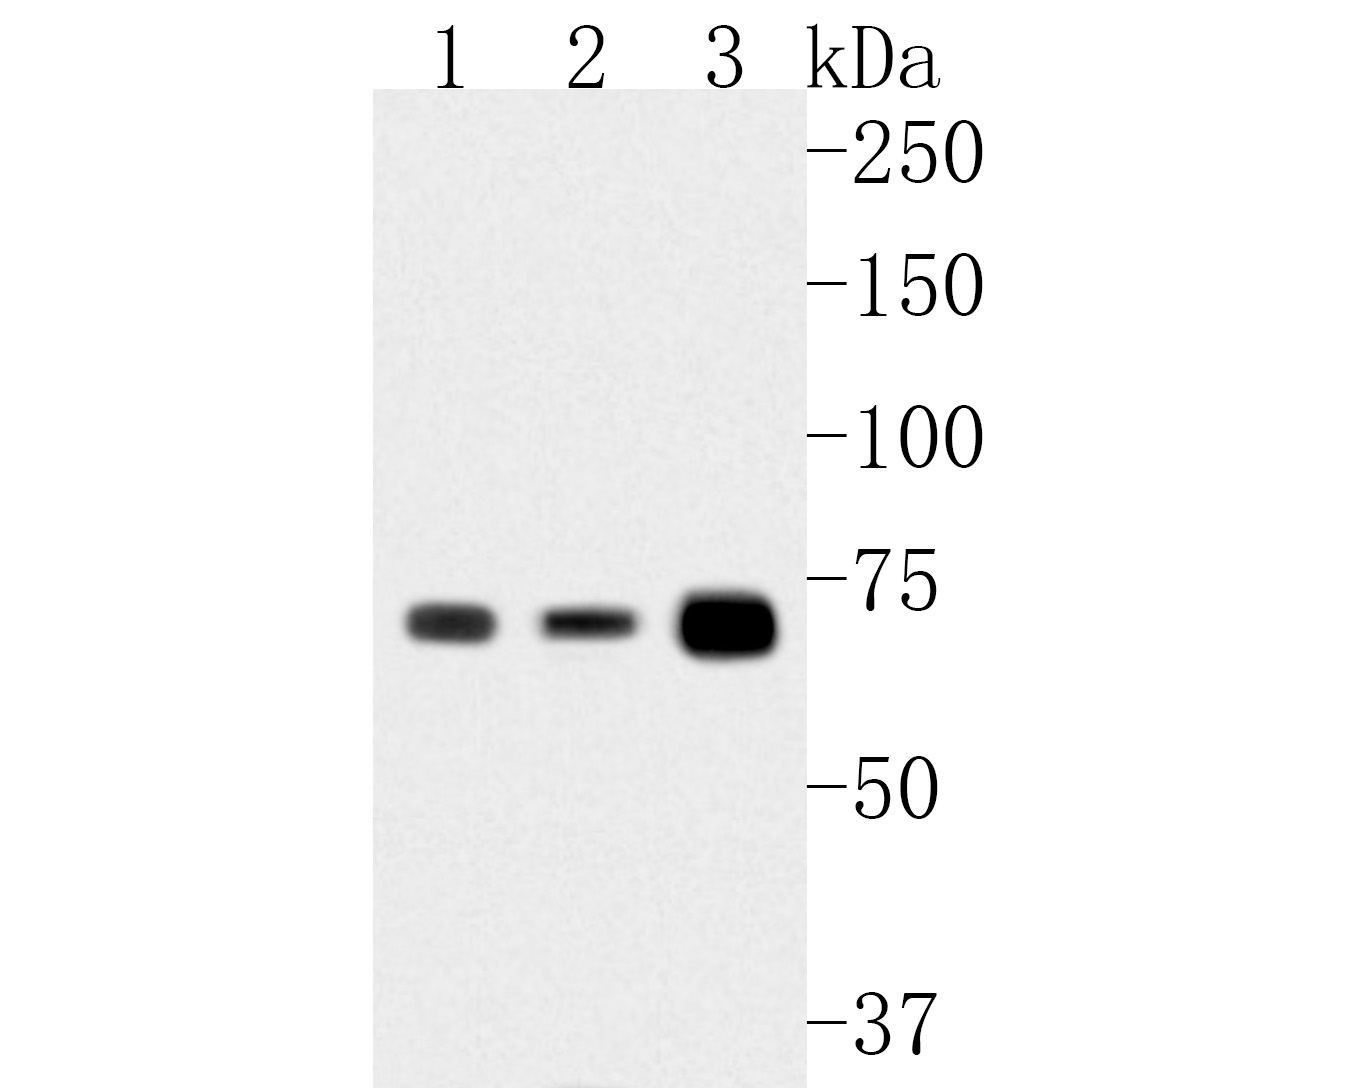 Western blot analysis of LSS on different lysates. Proteins were transferred to a PVDF membrane and blocked with 5% BSA in PBS for 1 hour at room temperature. The primary antibody (HA500011, 1/500) was used in 5% BSA at room temperature for 2 hours. Goat Anti-Rabbit IgG - HRP Secondary Antibody (HA1001) at 1:5,000 dilution was used for 1 hour at room temperature.<br /> Positive control: <br /> Lane 1: HepG2 cell lysate<br /> Lane 2: K562 cell lysate<br /> Lane 3: Human liver tissue lysate